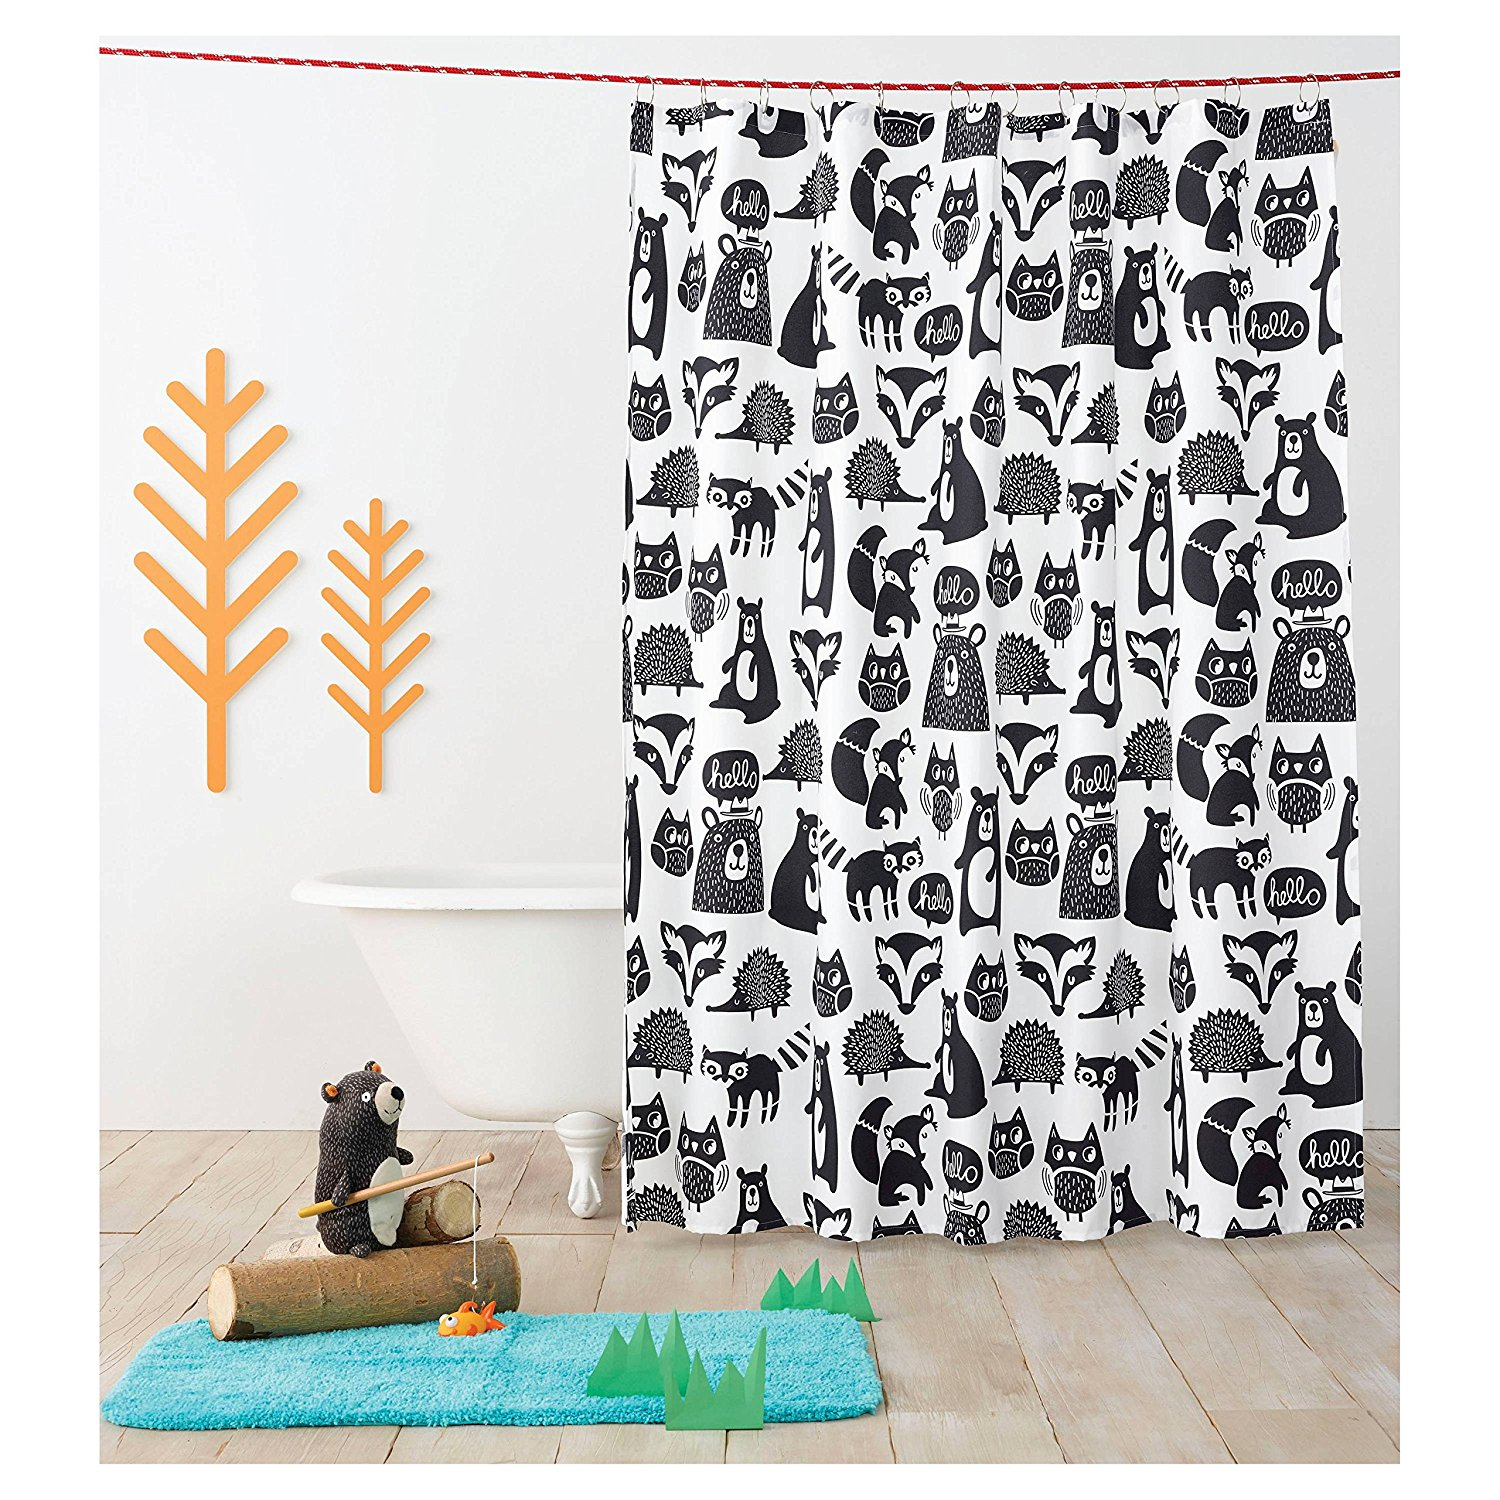 Cheap Forest Shower Curtain, find Forest Shower Curtain deals on ...